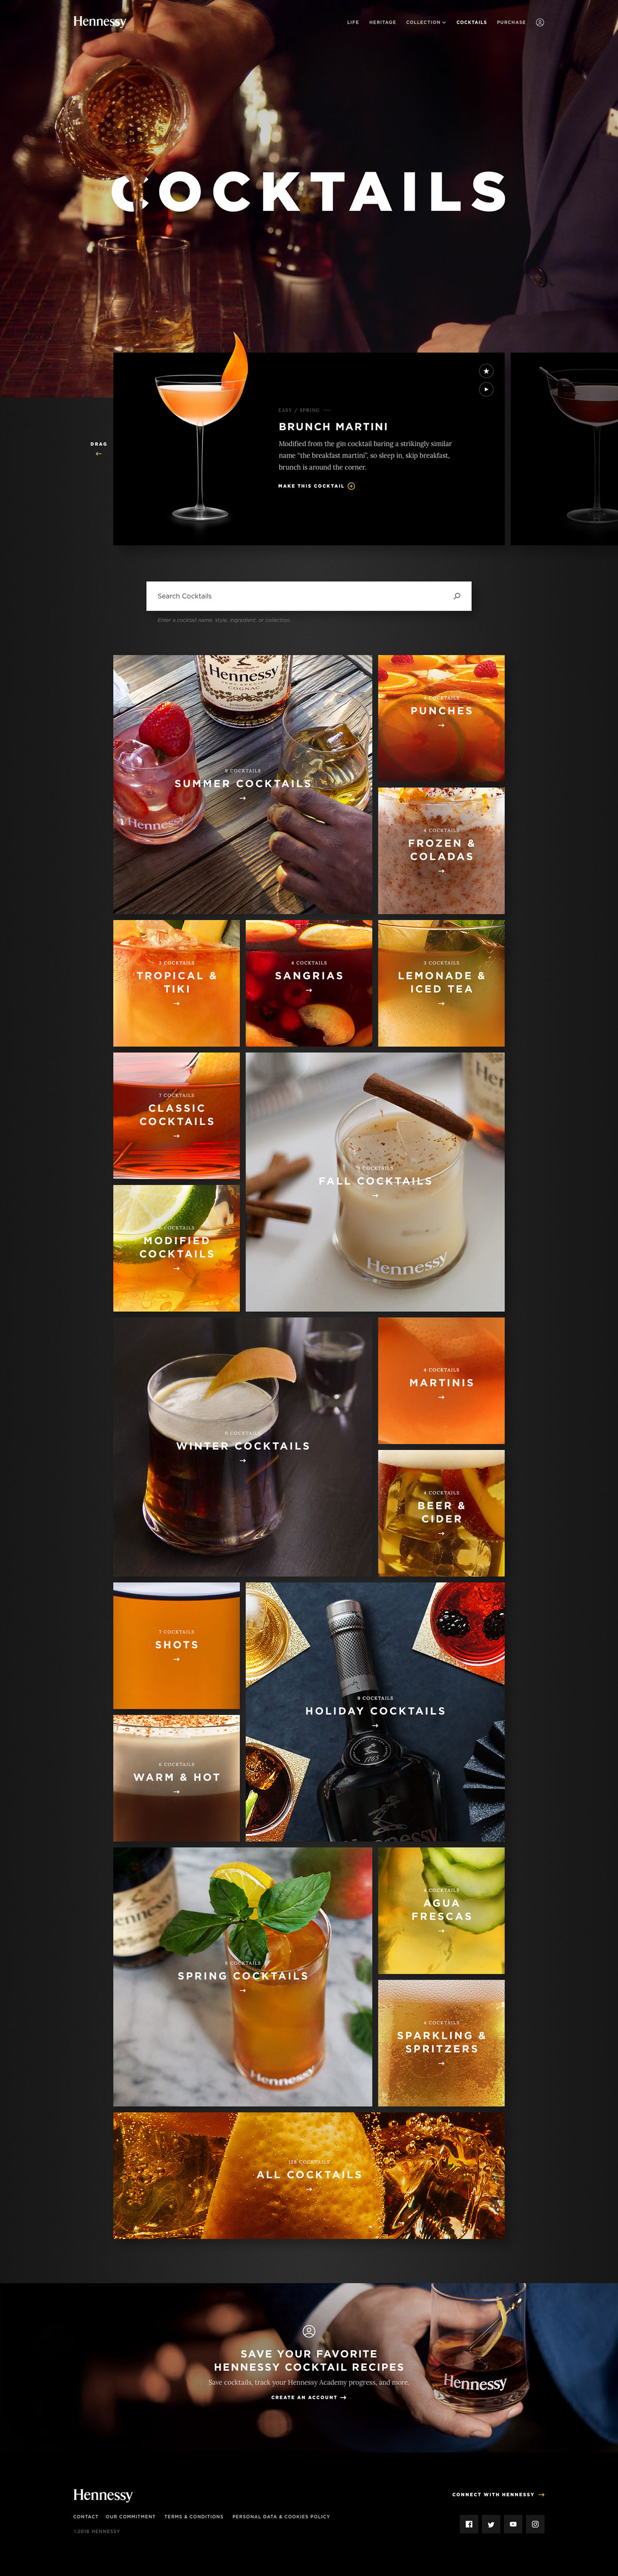 hennessy-screen-cocktails